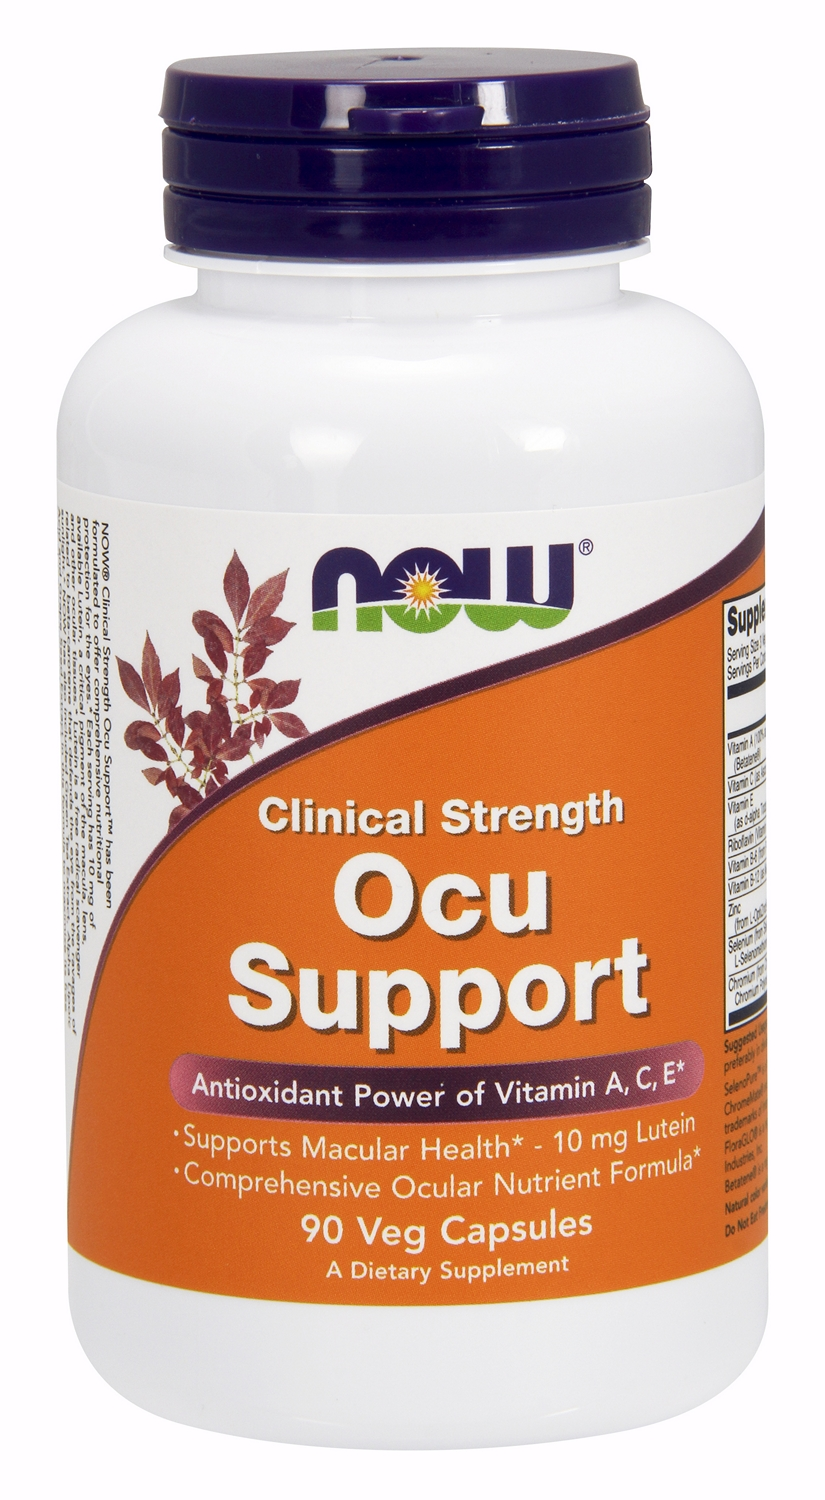 Clinical Strength Ocu Support 90 caps by NOW